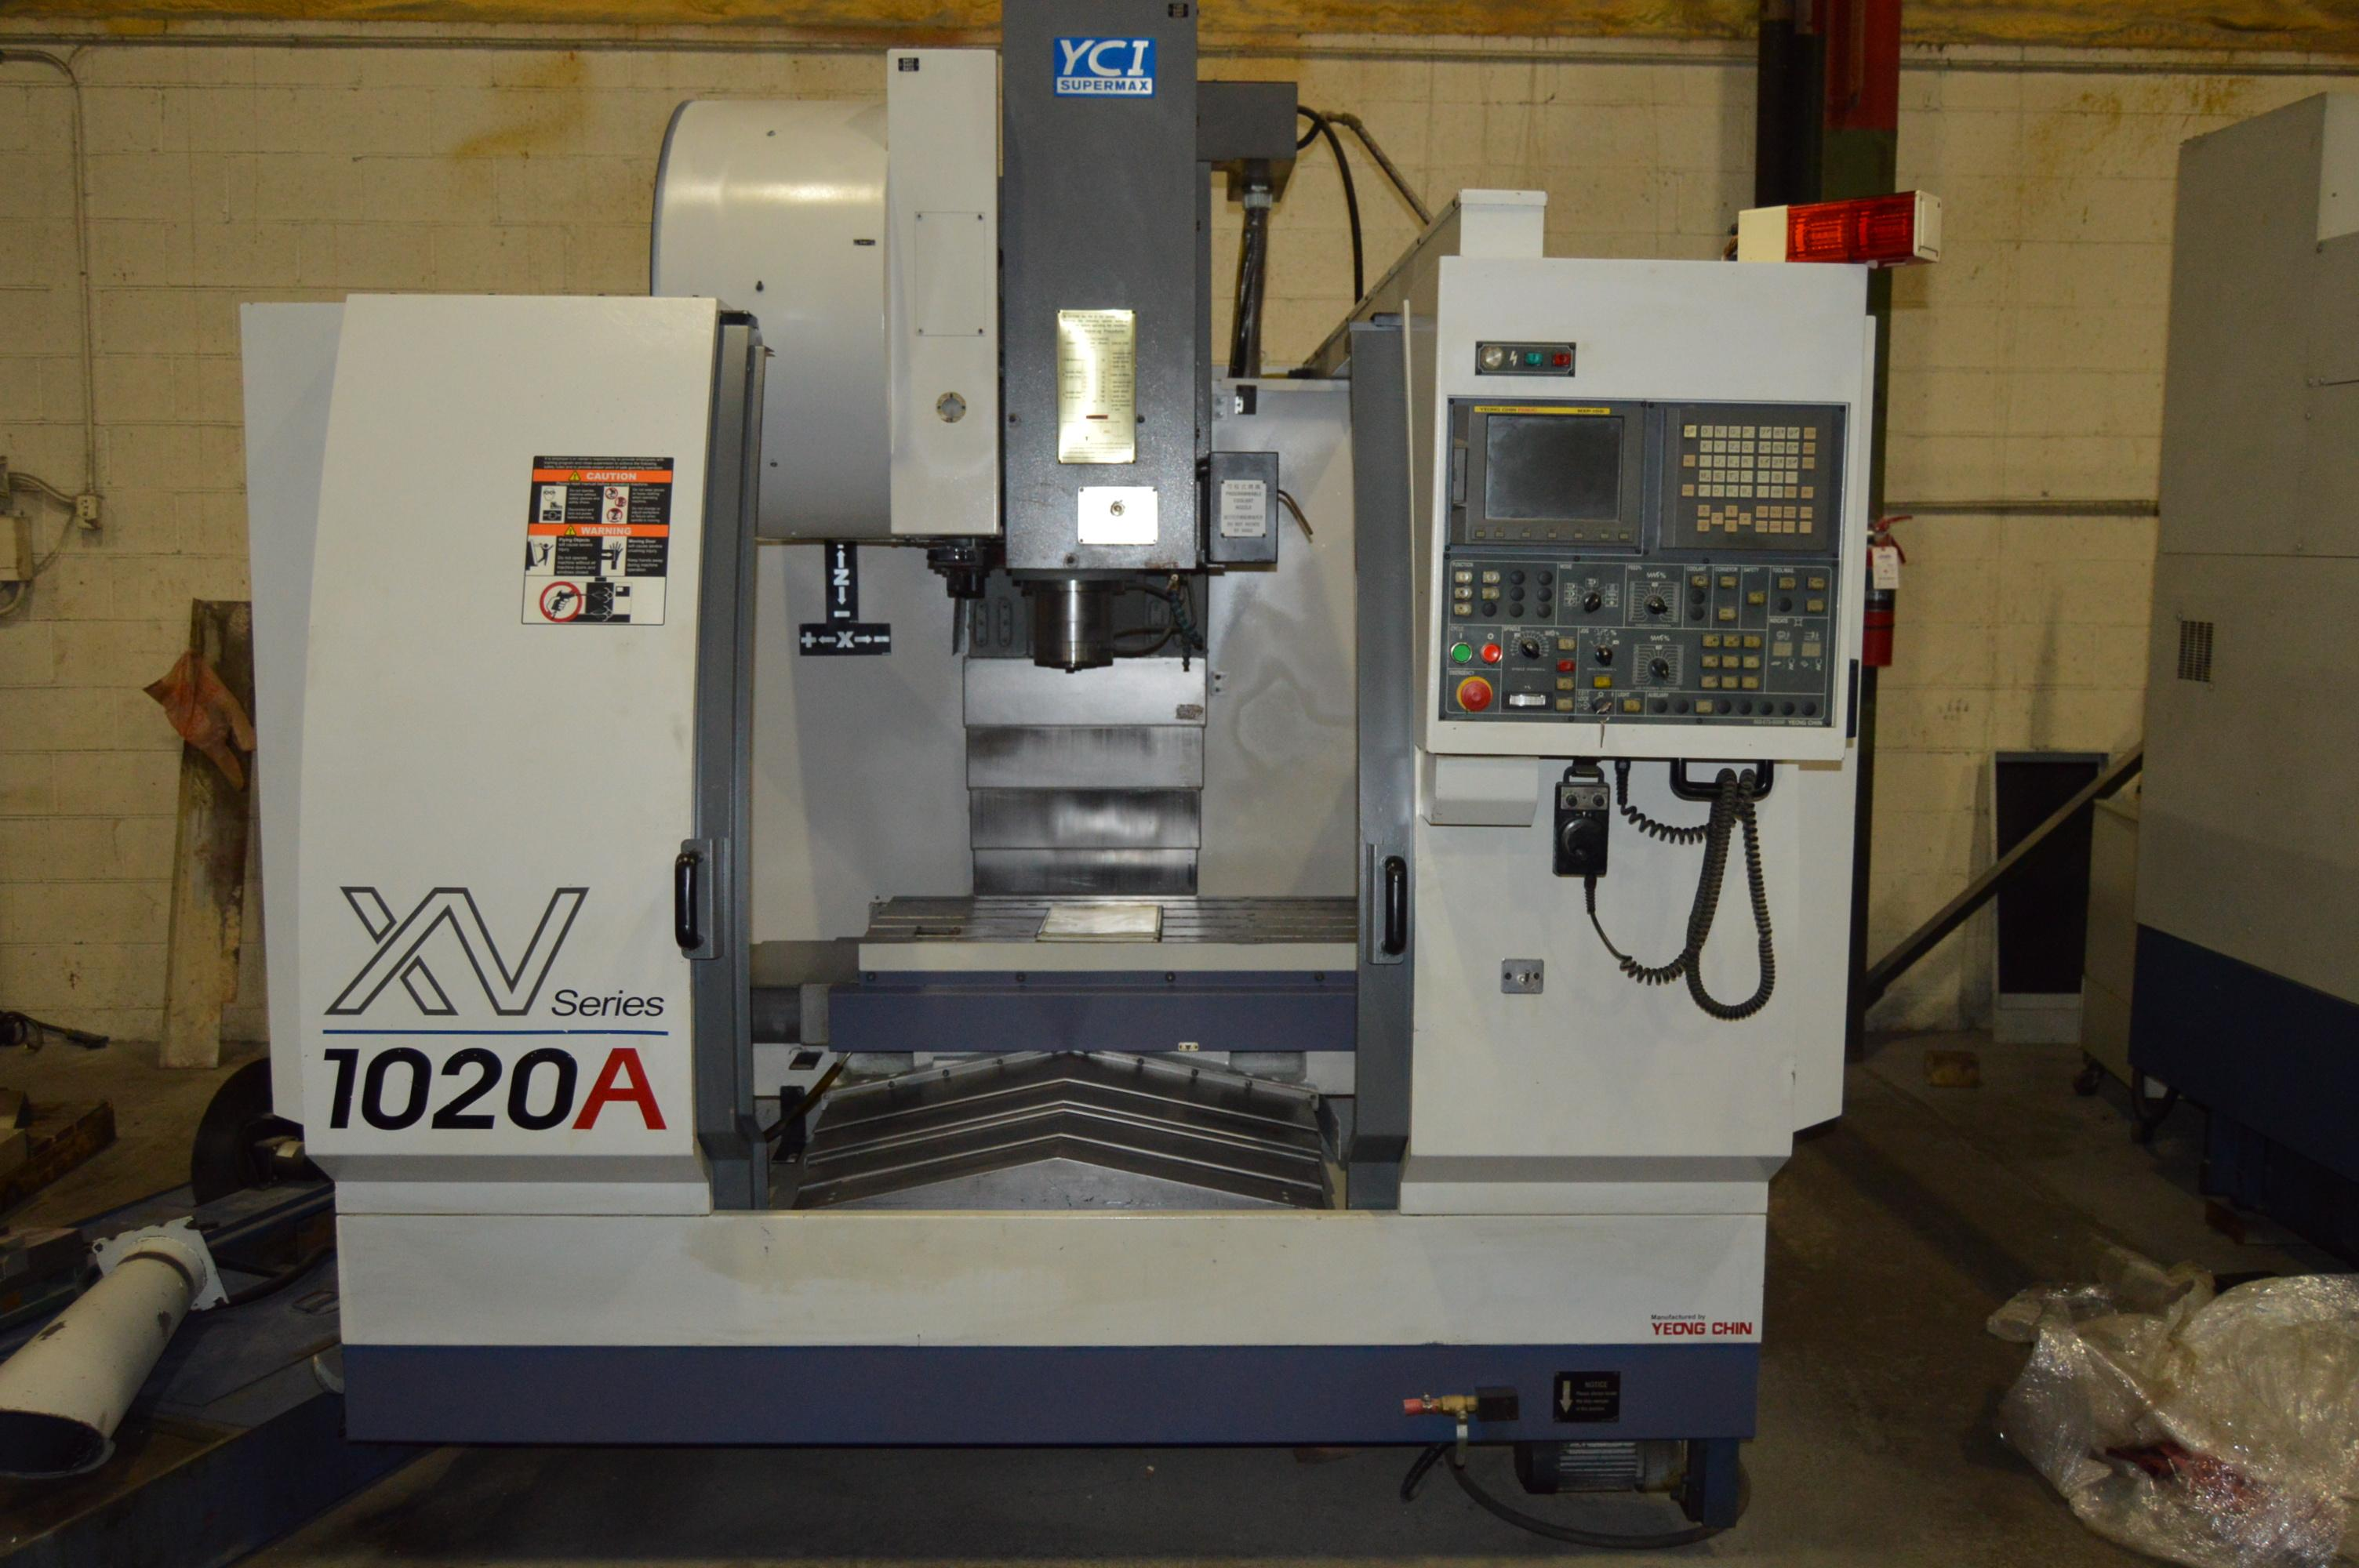 YCI SUPERMAX XV 1020A CNC VERTICAL MACHINING CENTER w/Fanuc MXP100i, 8K Spindle, 24 ATC, Rigid Tap, Auger, 2002